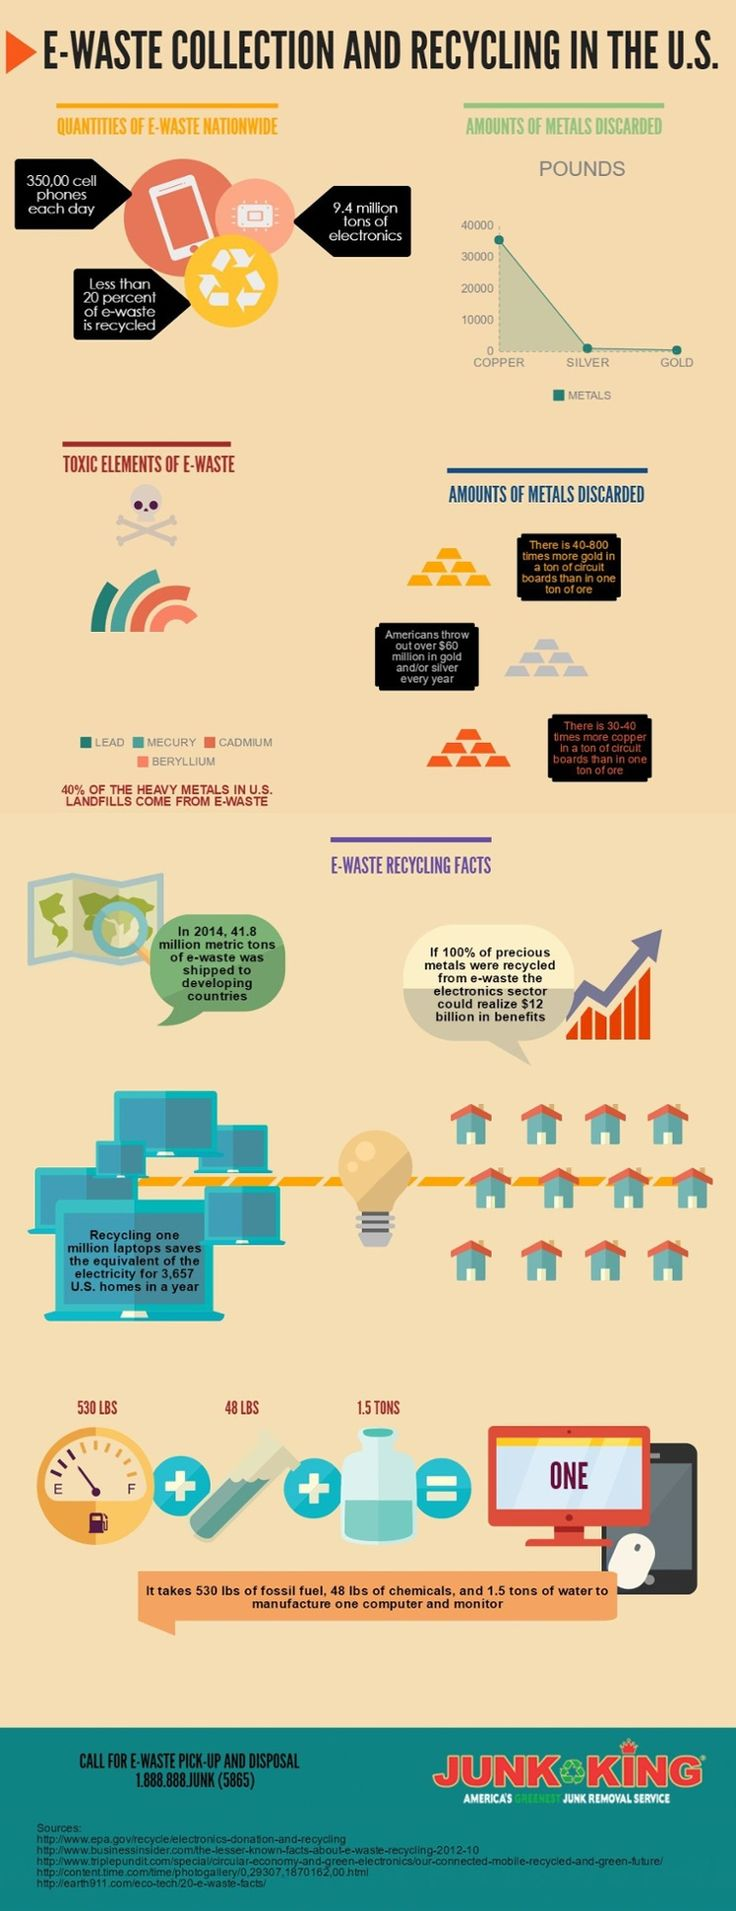 e-waste-recycling-is-an-alternative-for-junk-disposal-infographic